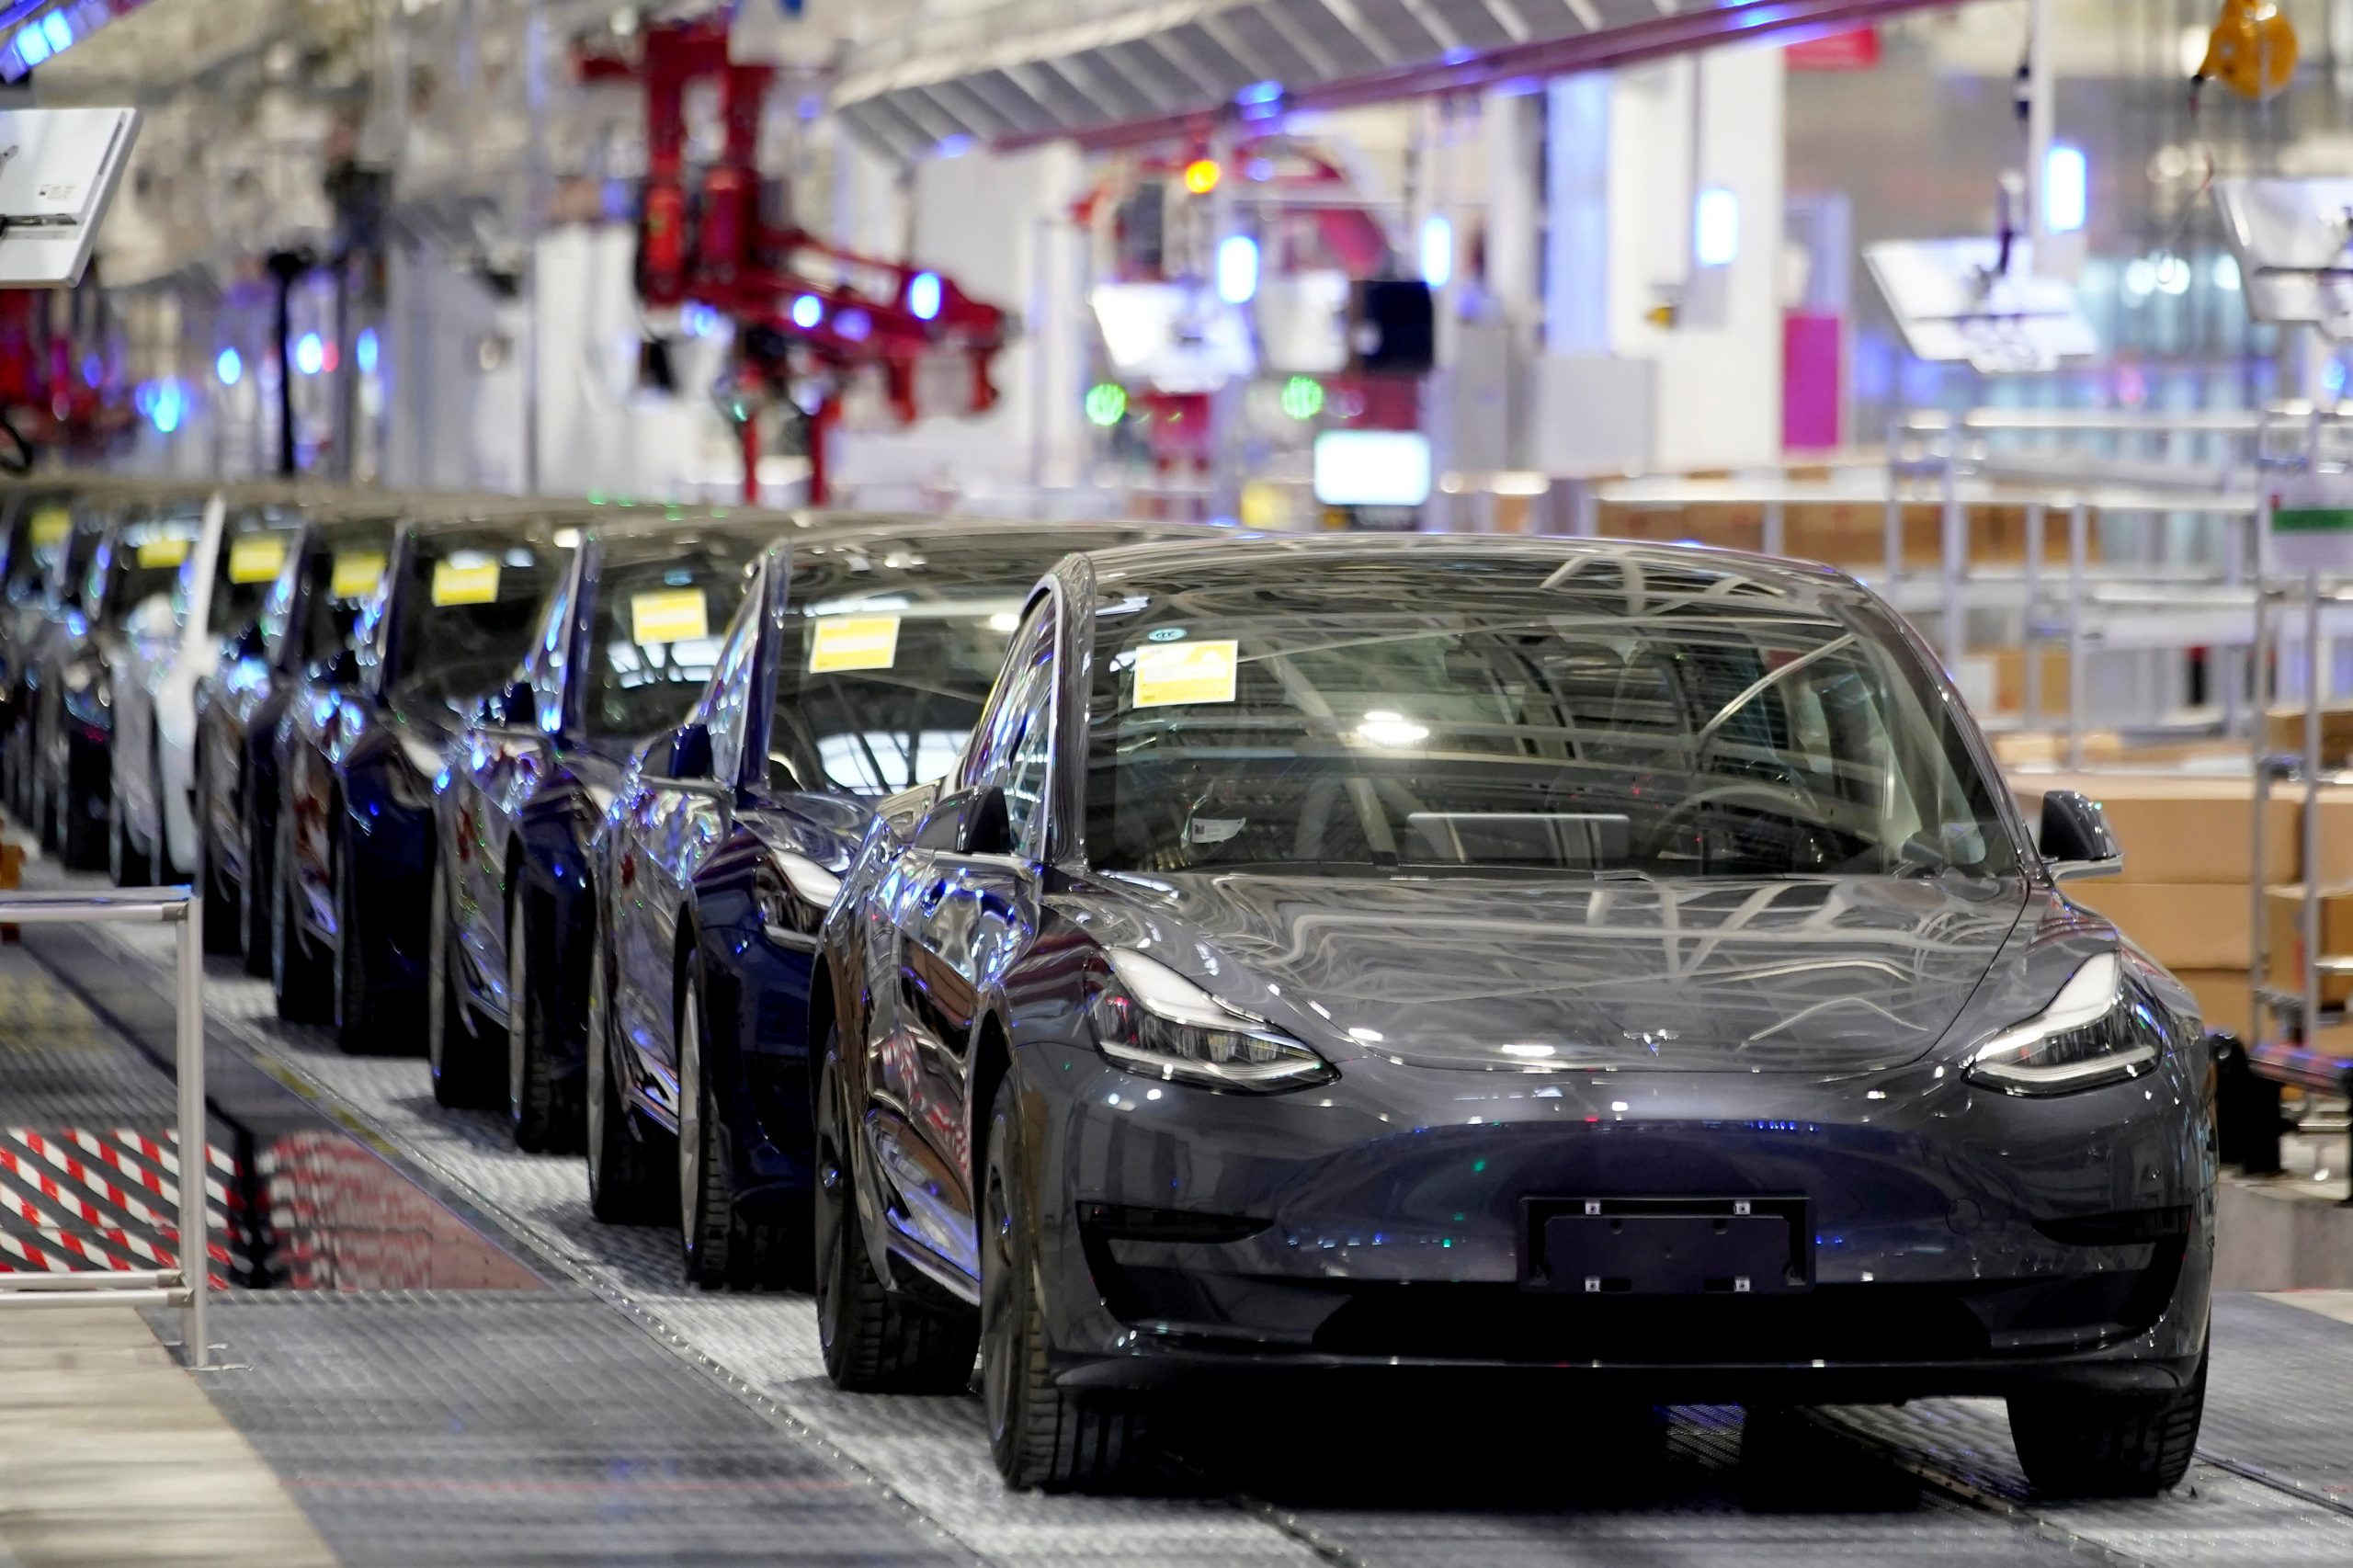 It is reported that a Tesla Model 3 car explodes in a Shanghai garage